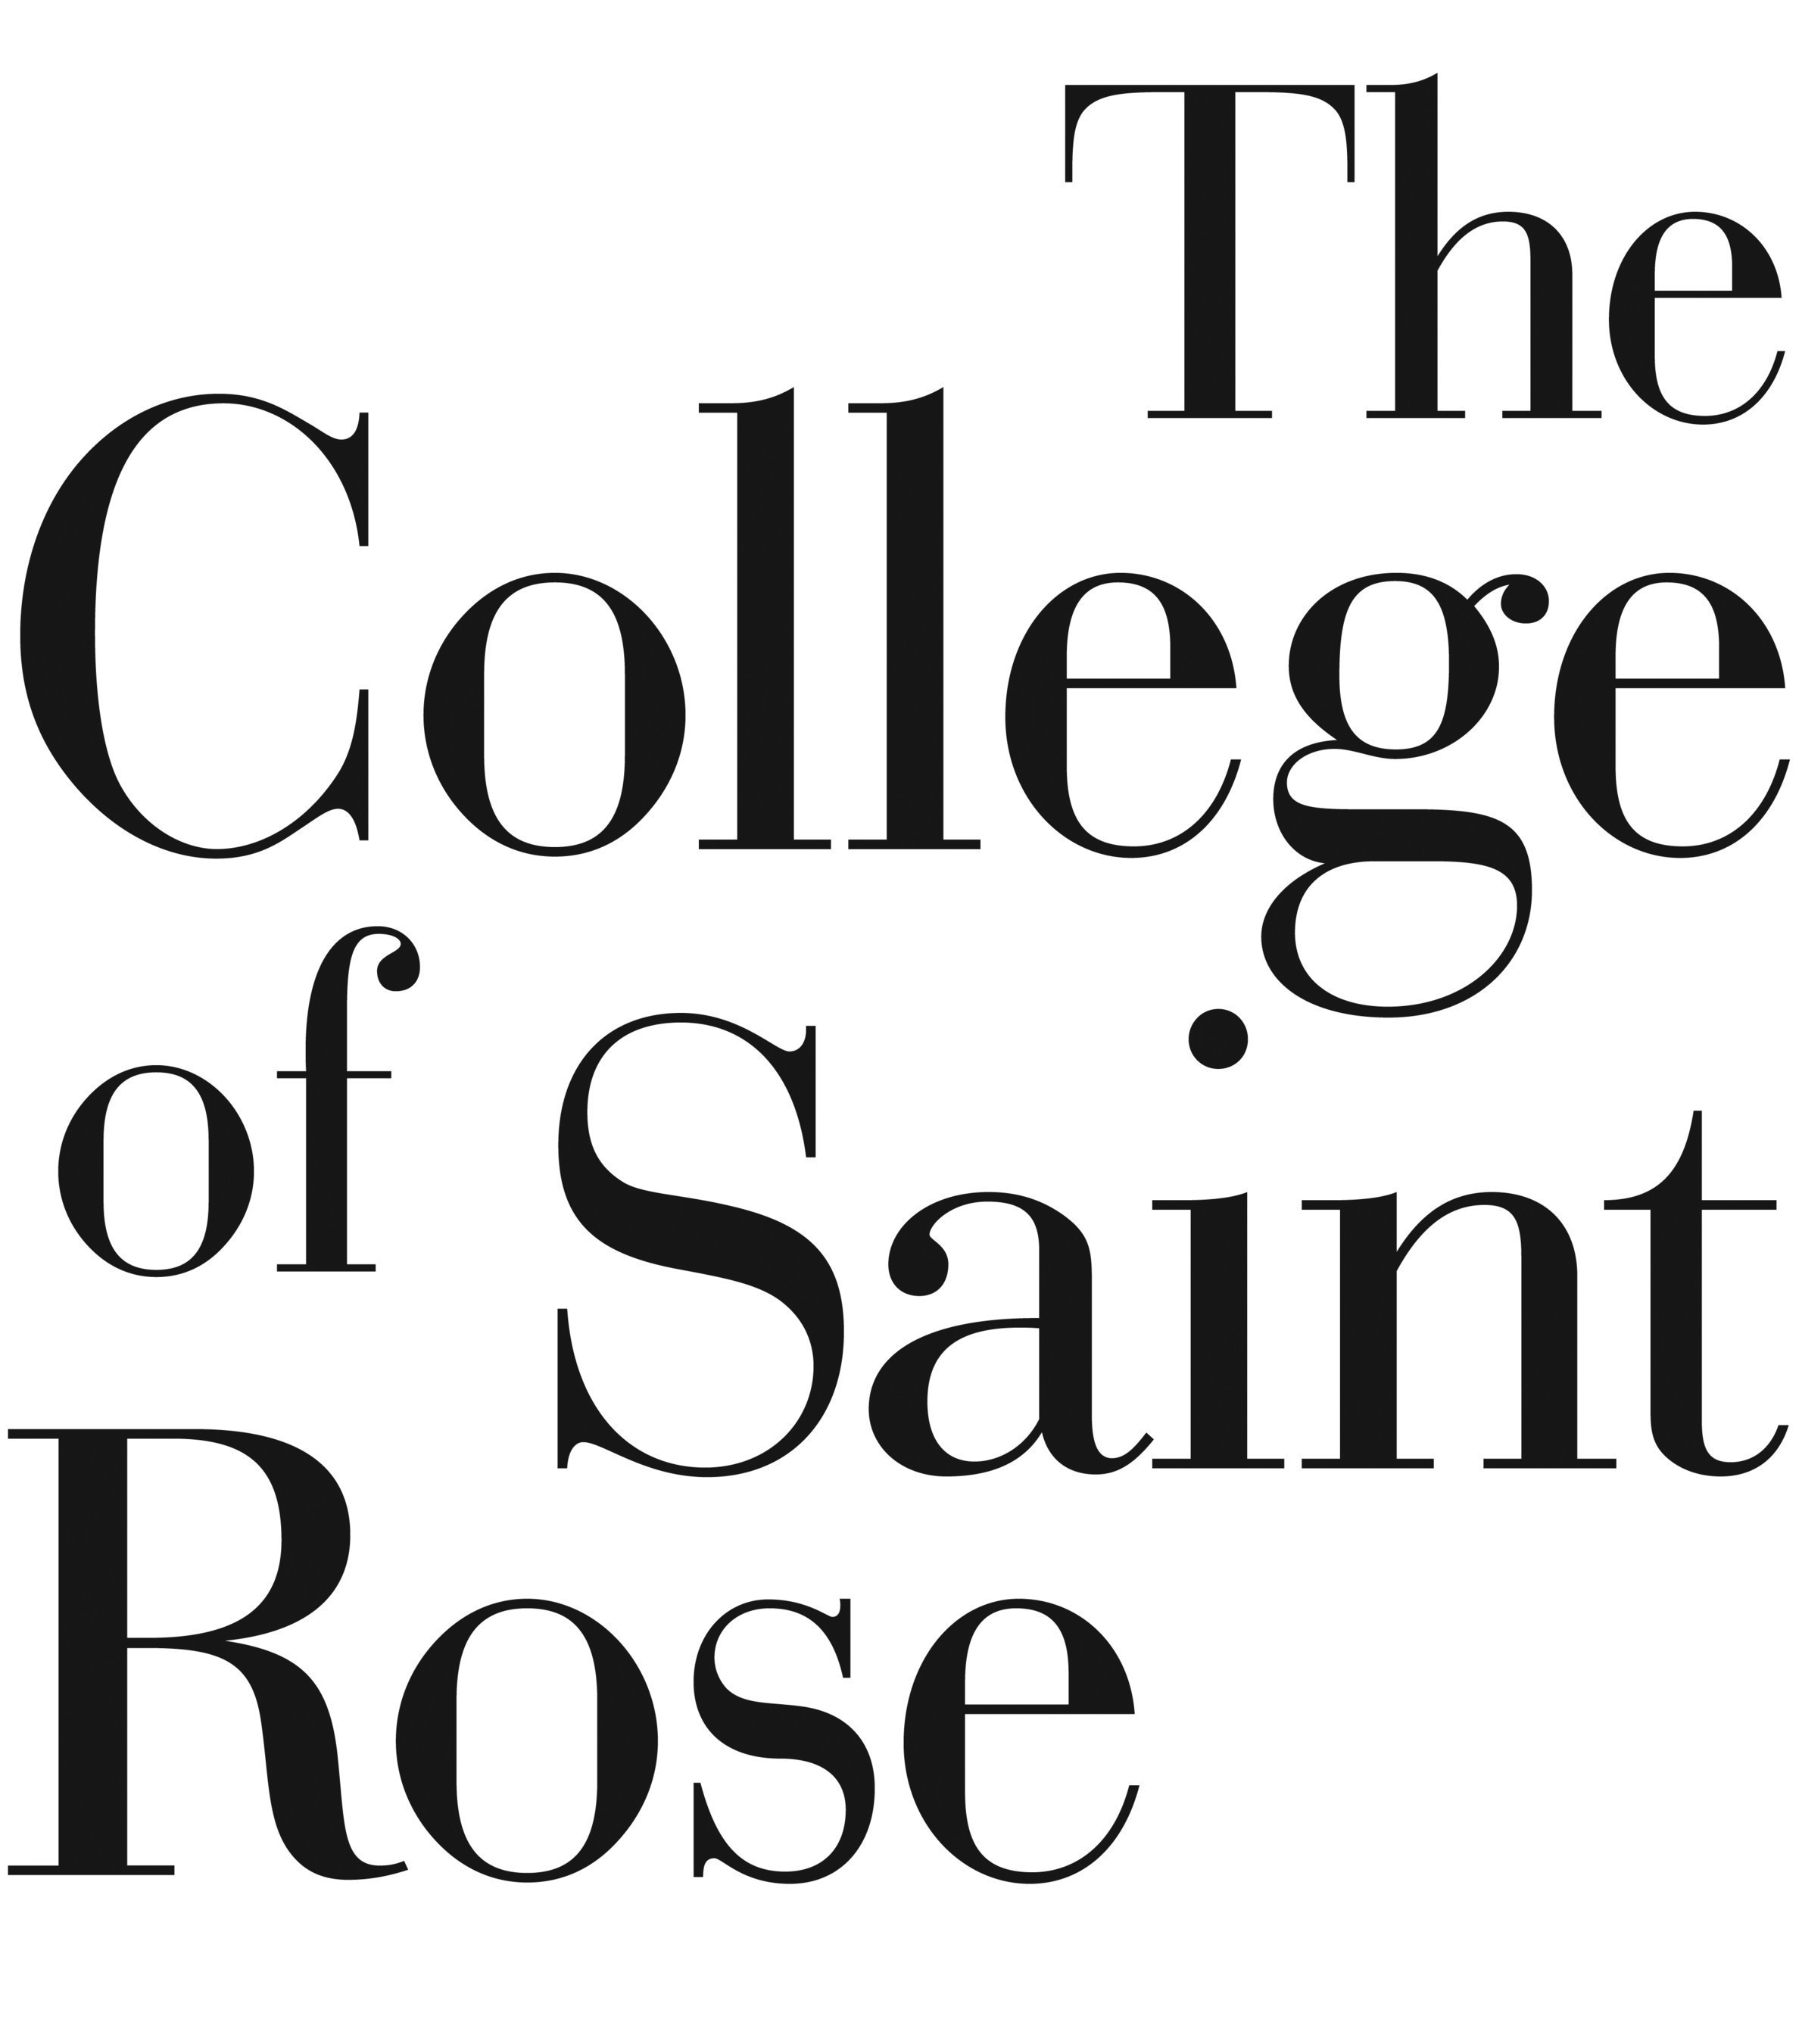 Saint Rose Receives Almost $4 Million in New Gifts to